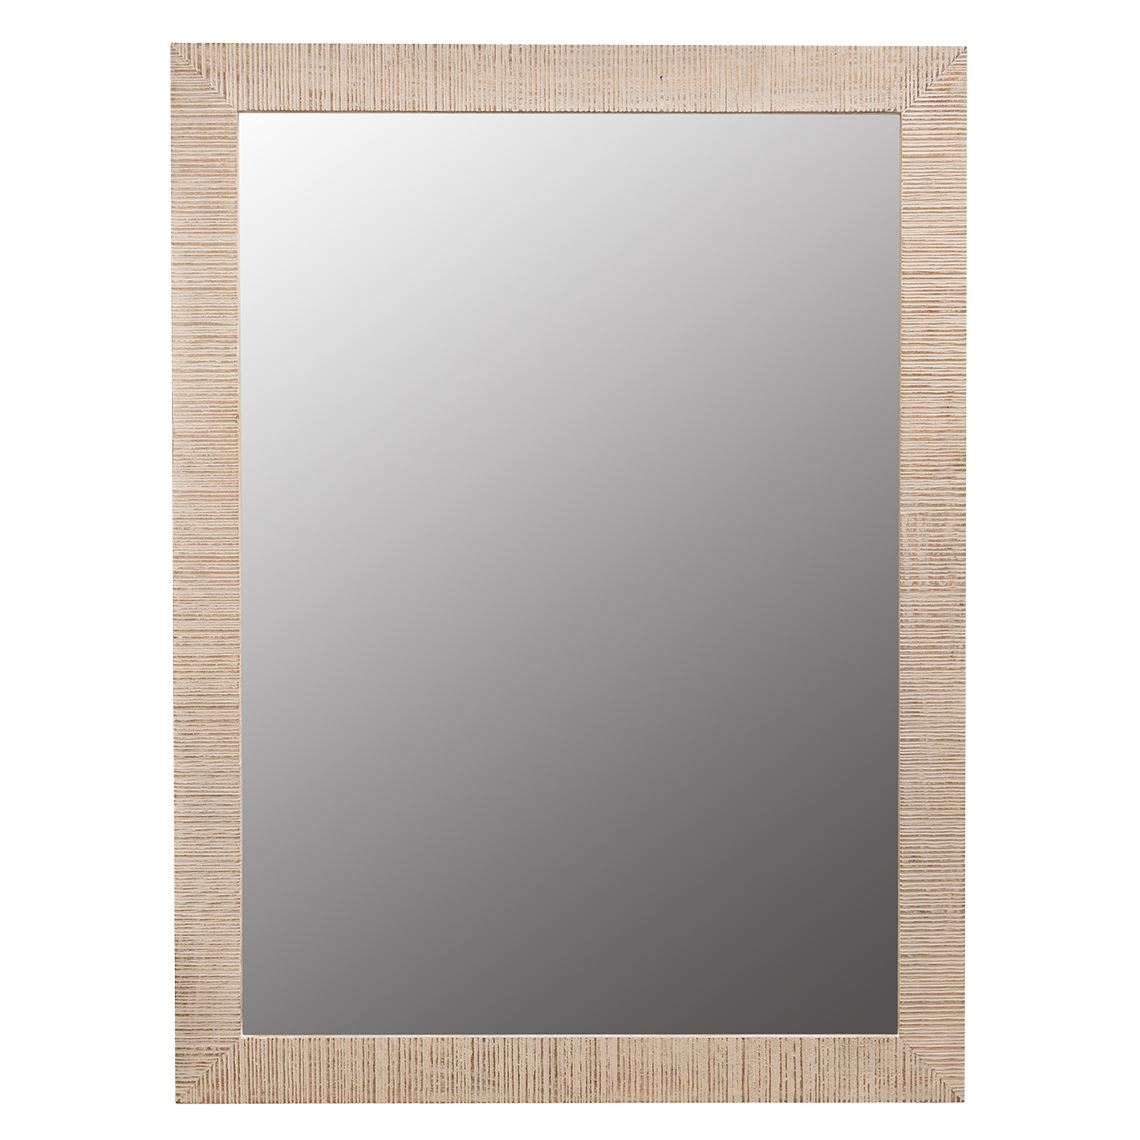 Trimble Mirror Size W 90cm x D 8cm x H 120cm in White Wash Mangowood Freedom